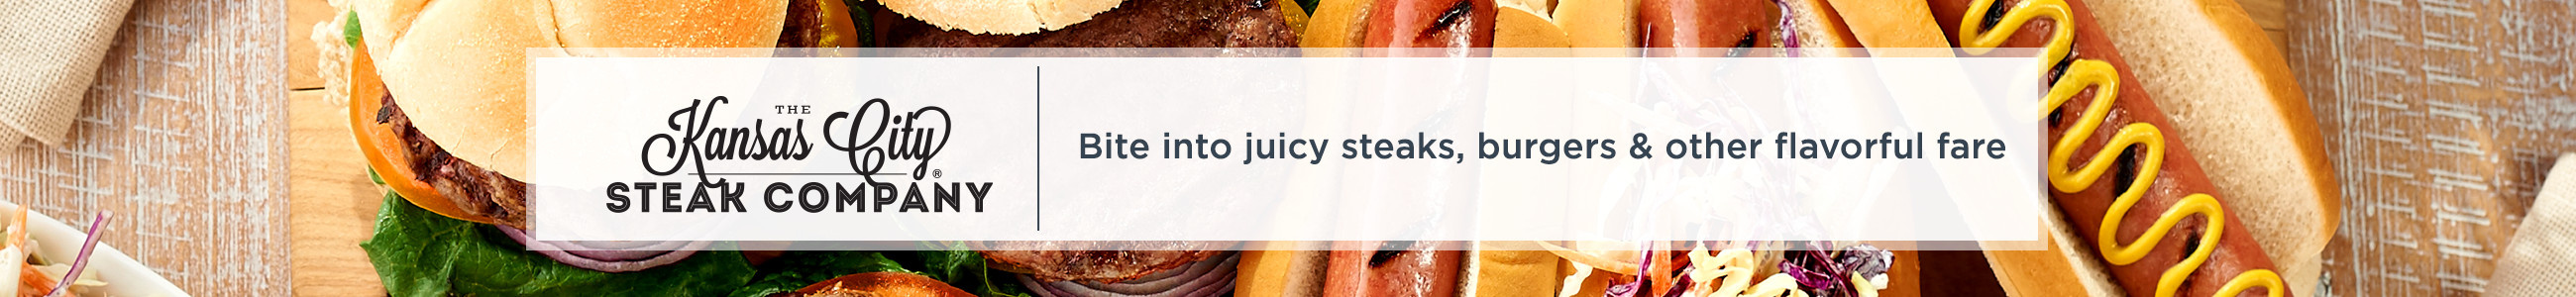 Kansas City Steak Company. Bite into juicy steaks, burgers & other flavorful fare